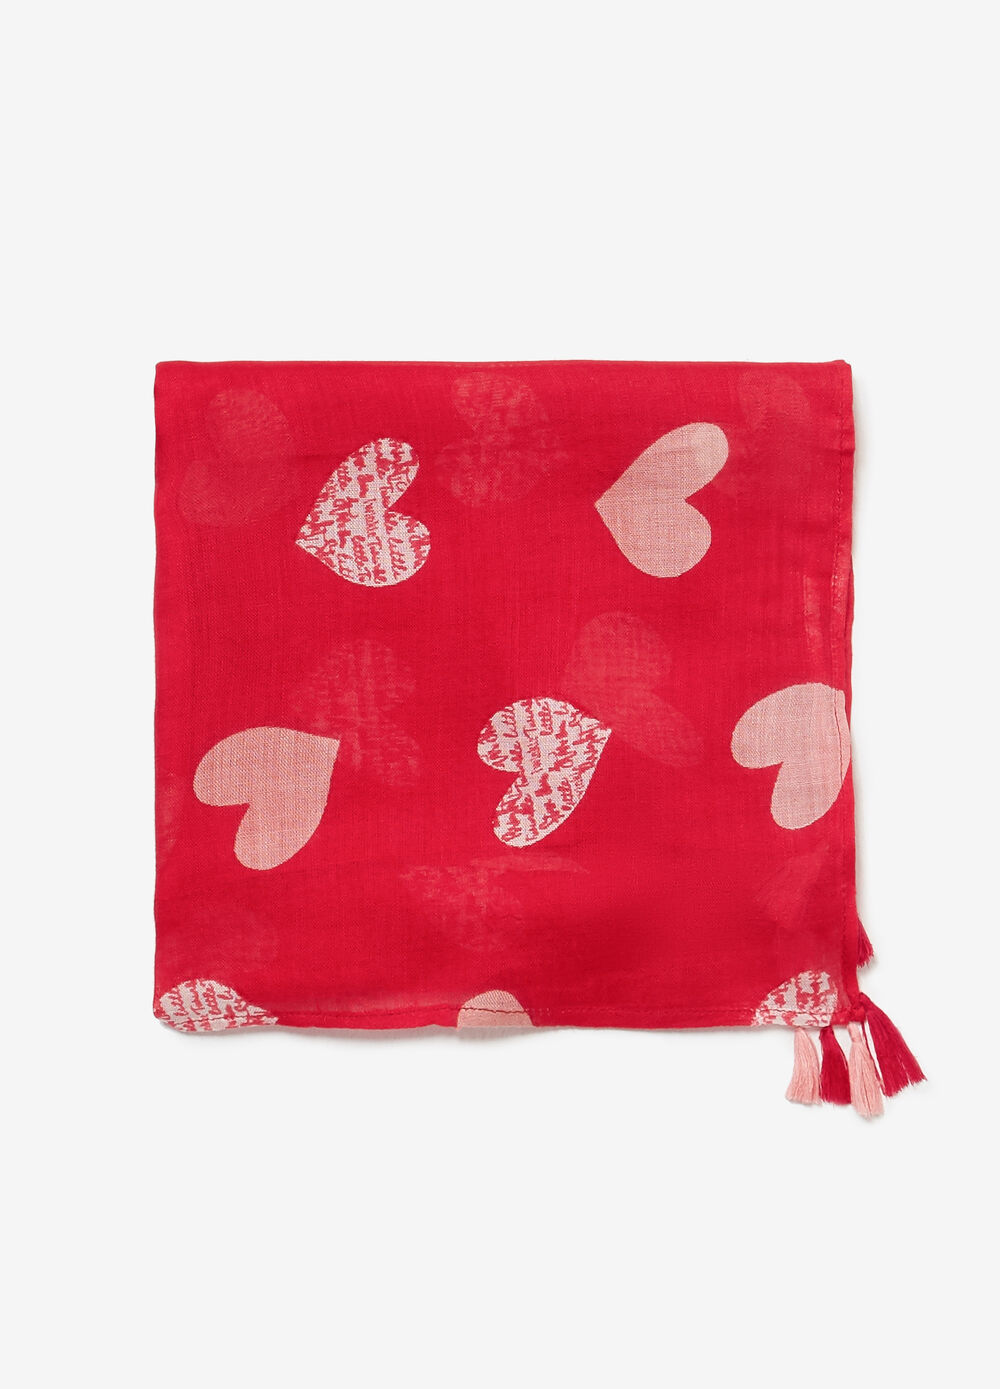 Heart patterned pashmina with tassels